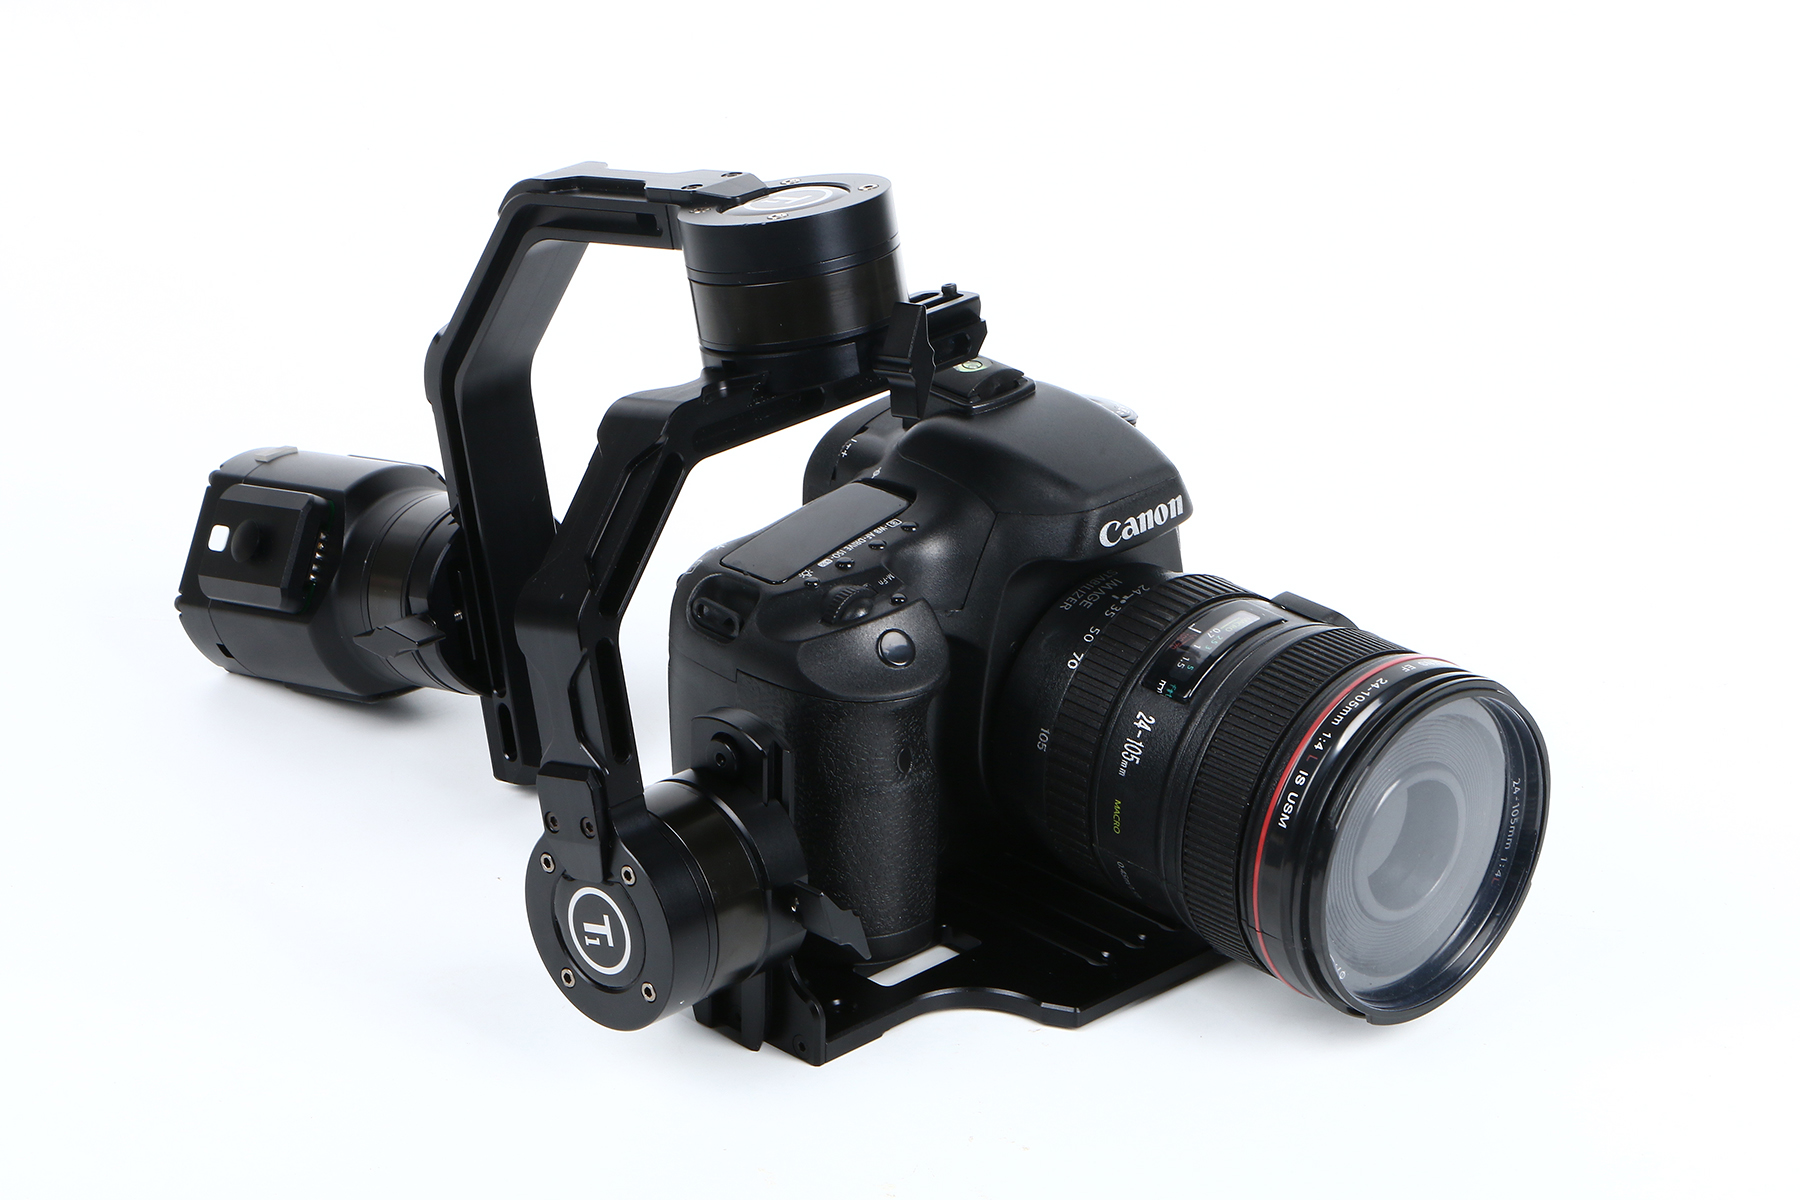 Ti 3-Axis Gimbal Handheld Stabilizer for small DSLR Cameras